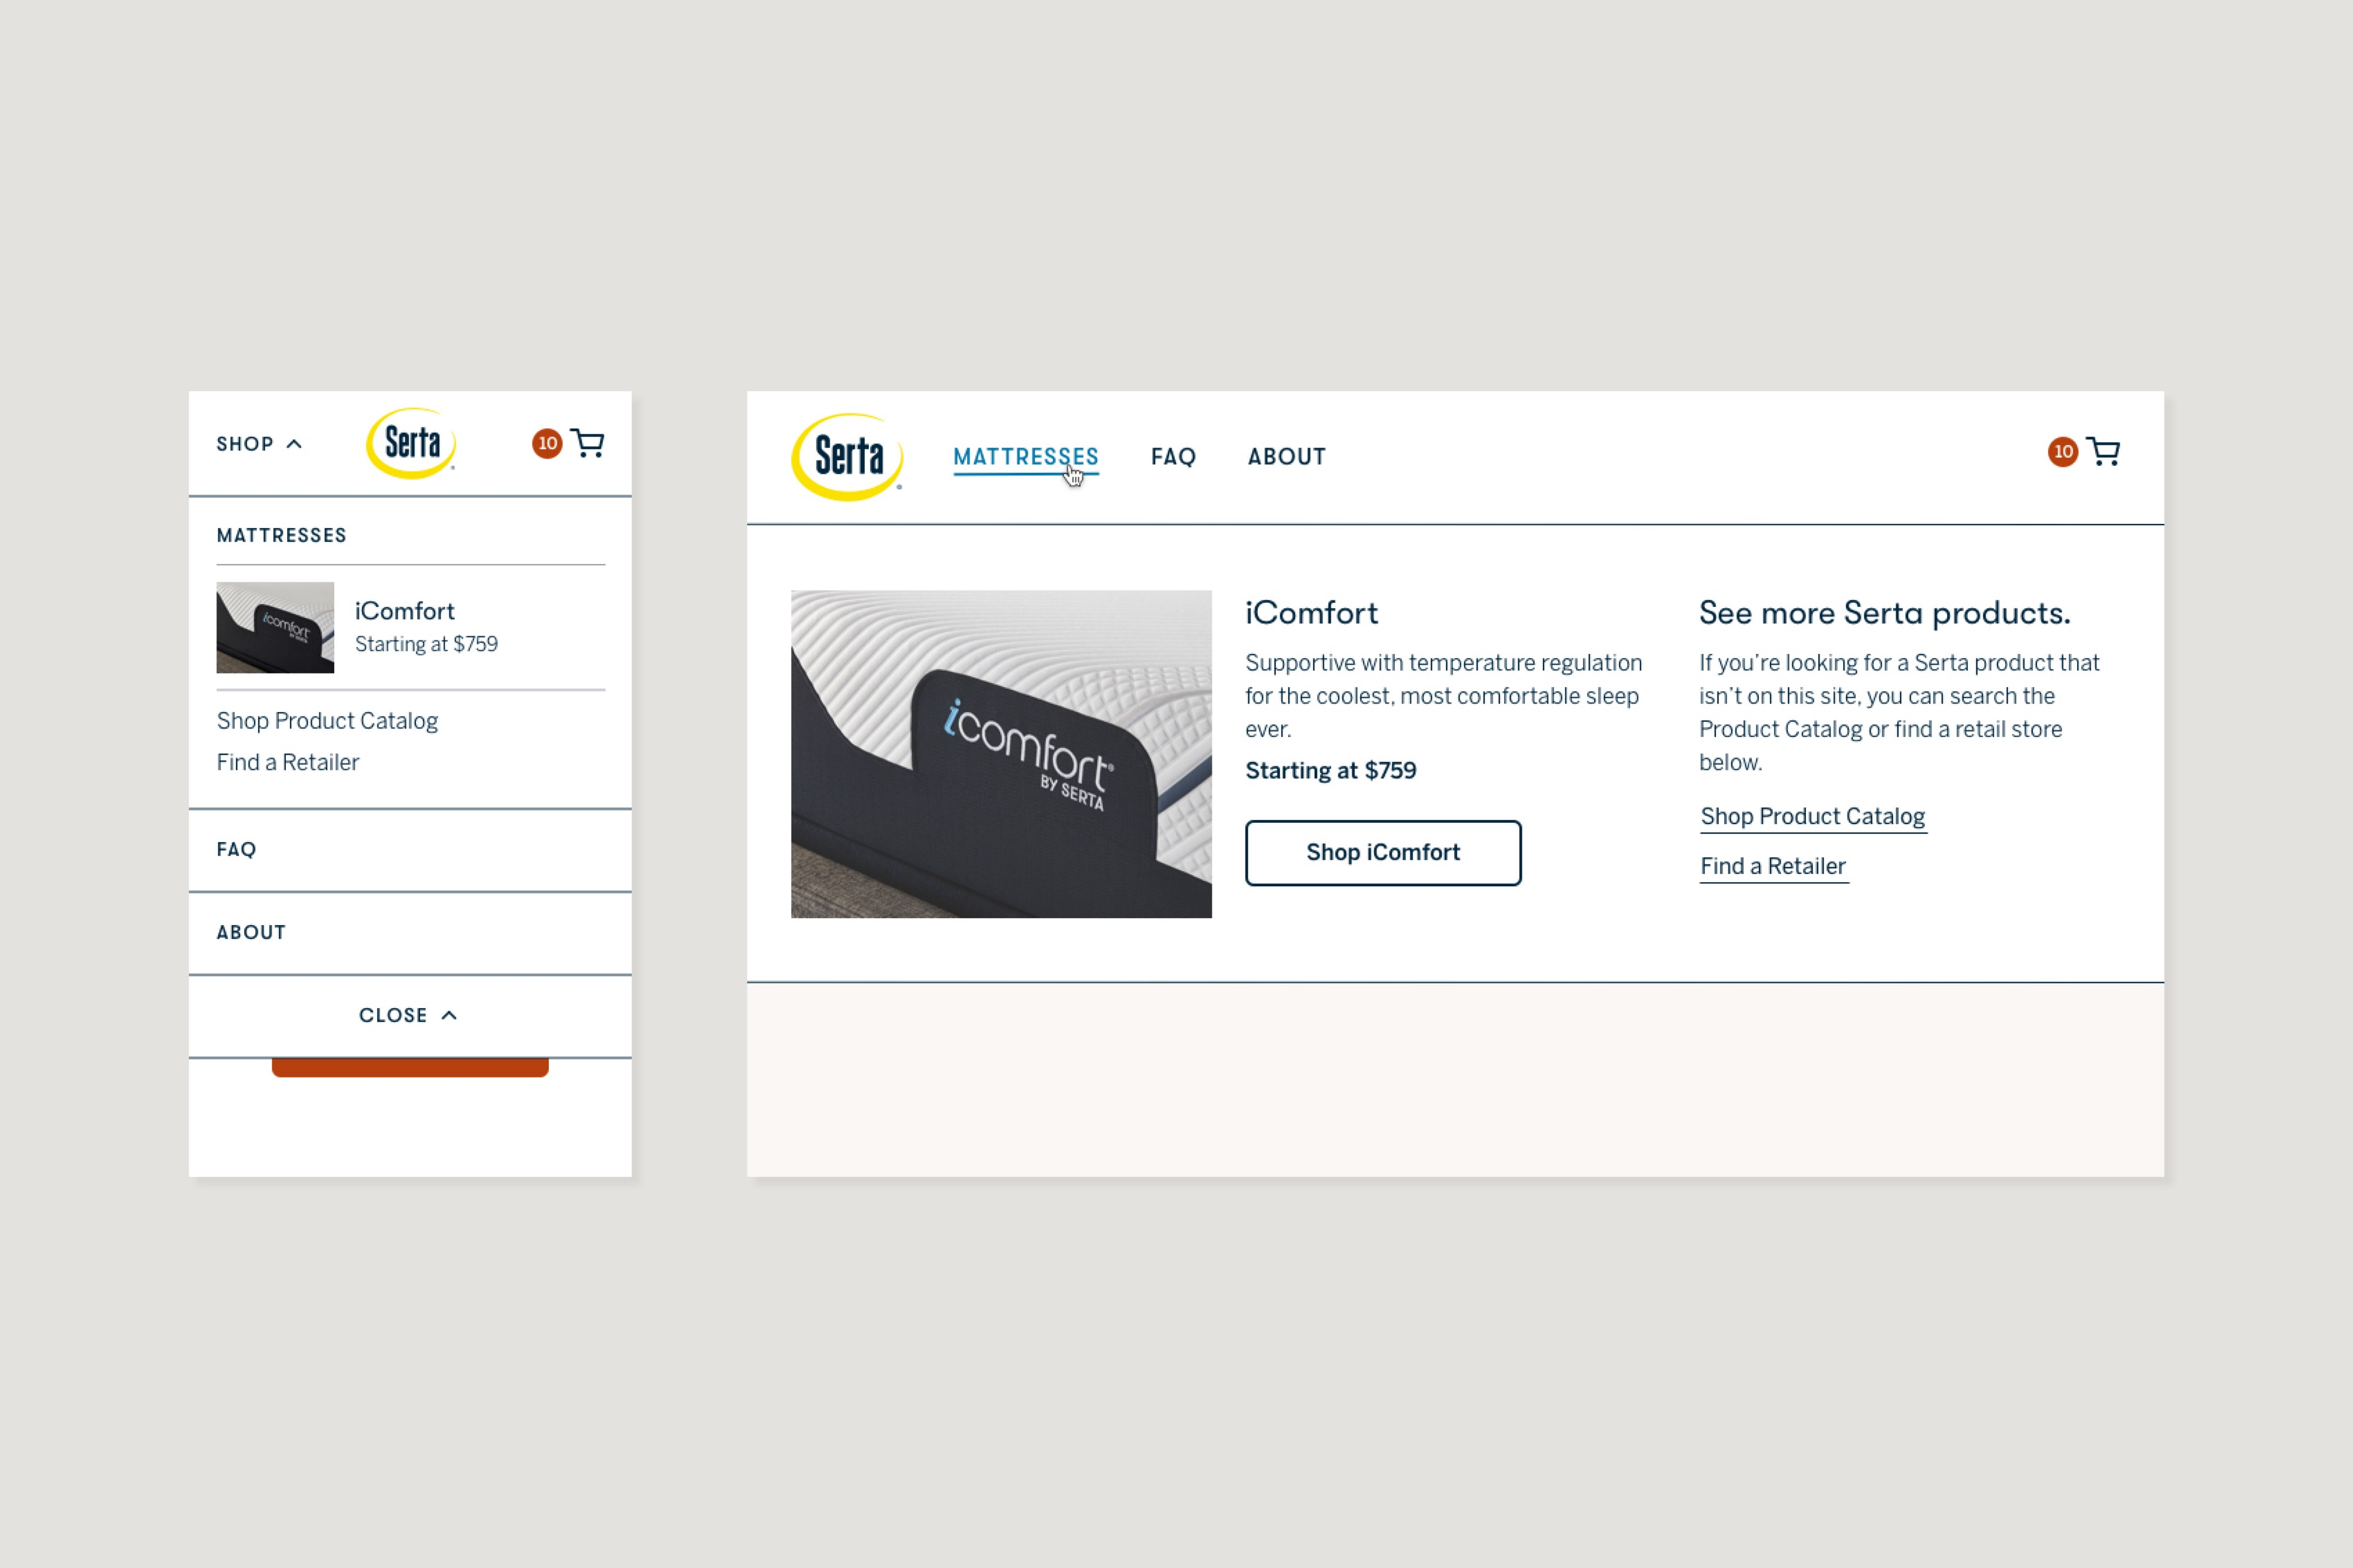 Responsive comps for the expanded navigation menu